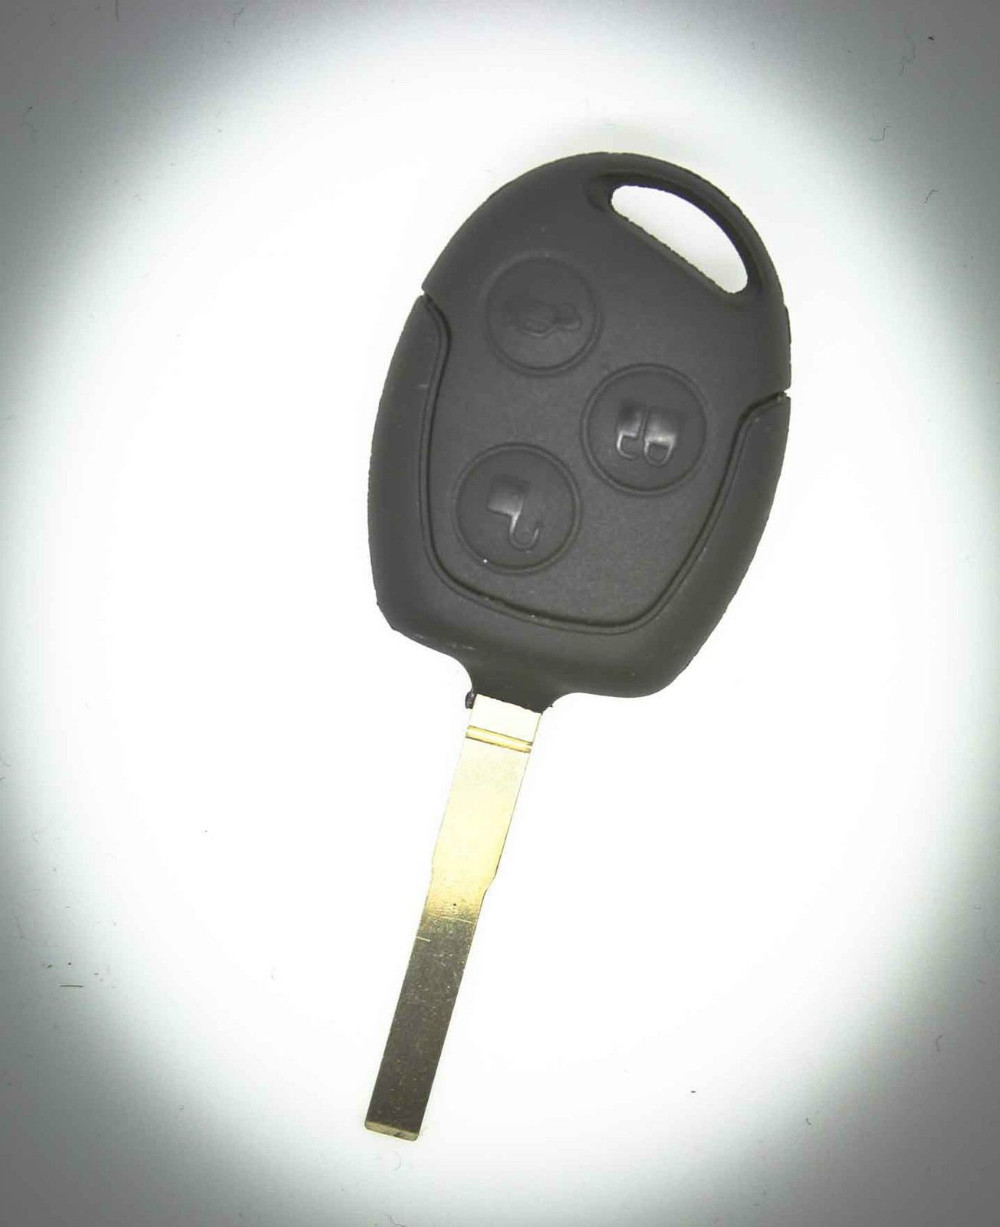 ford transit connect  button remote alarm key fob case